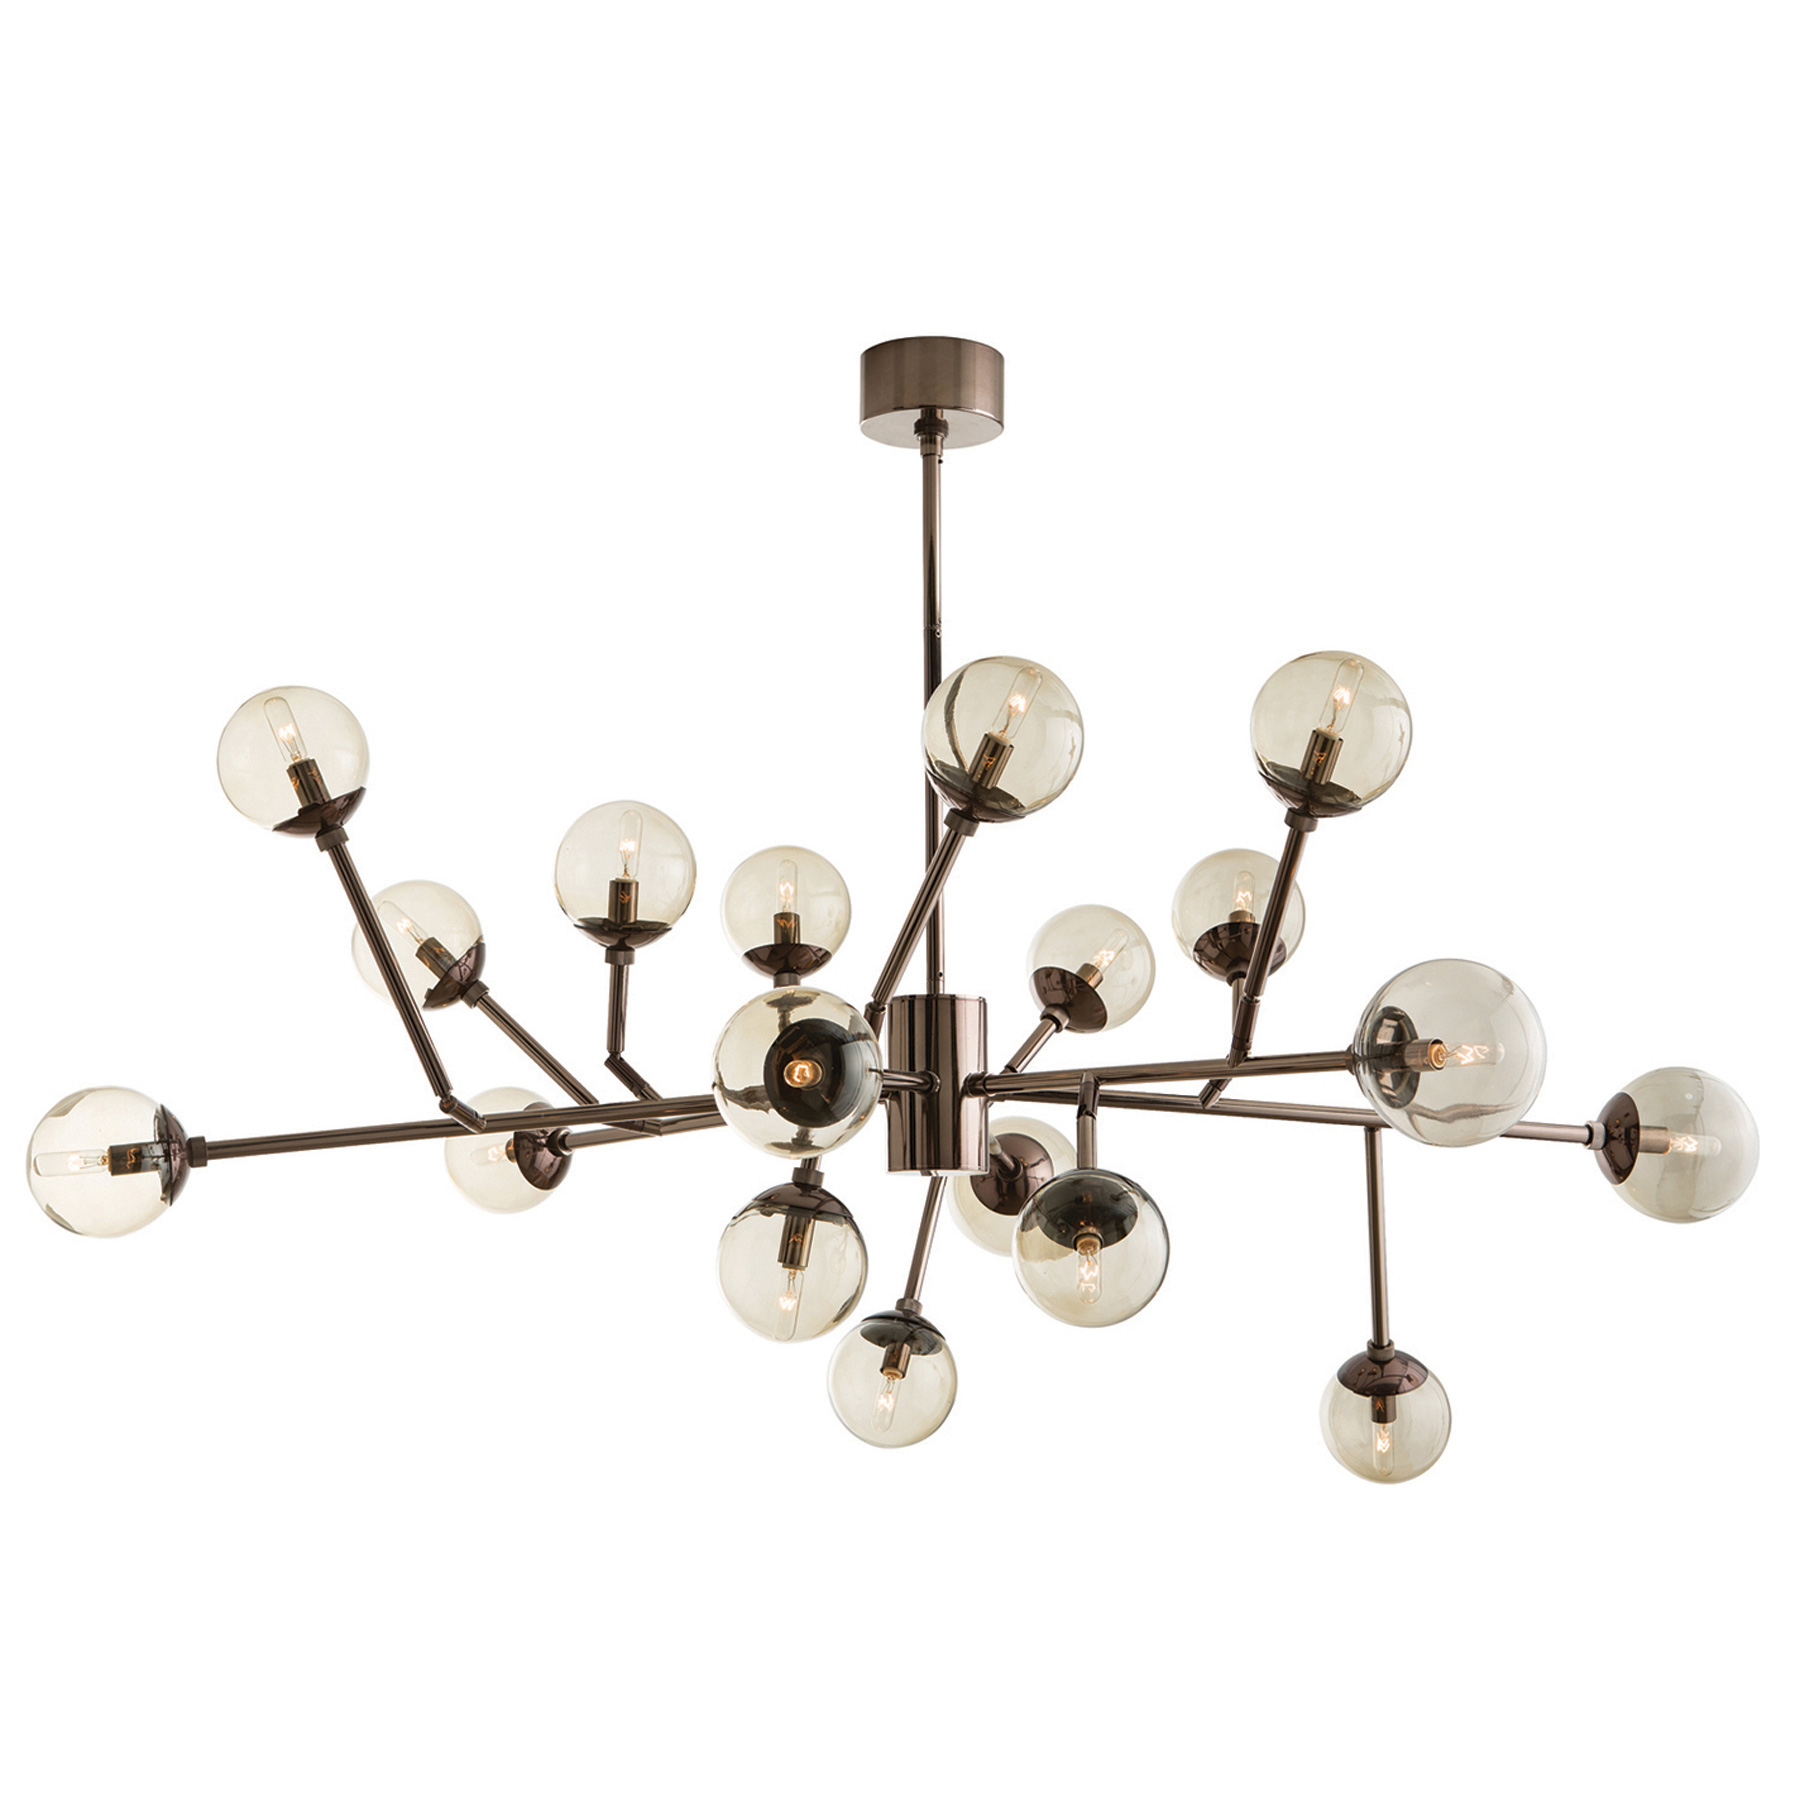 Chandelier by Arteriors Home